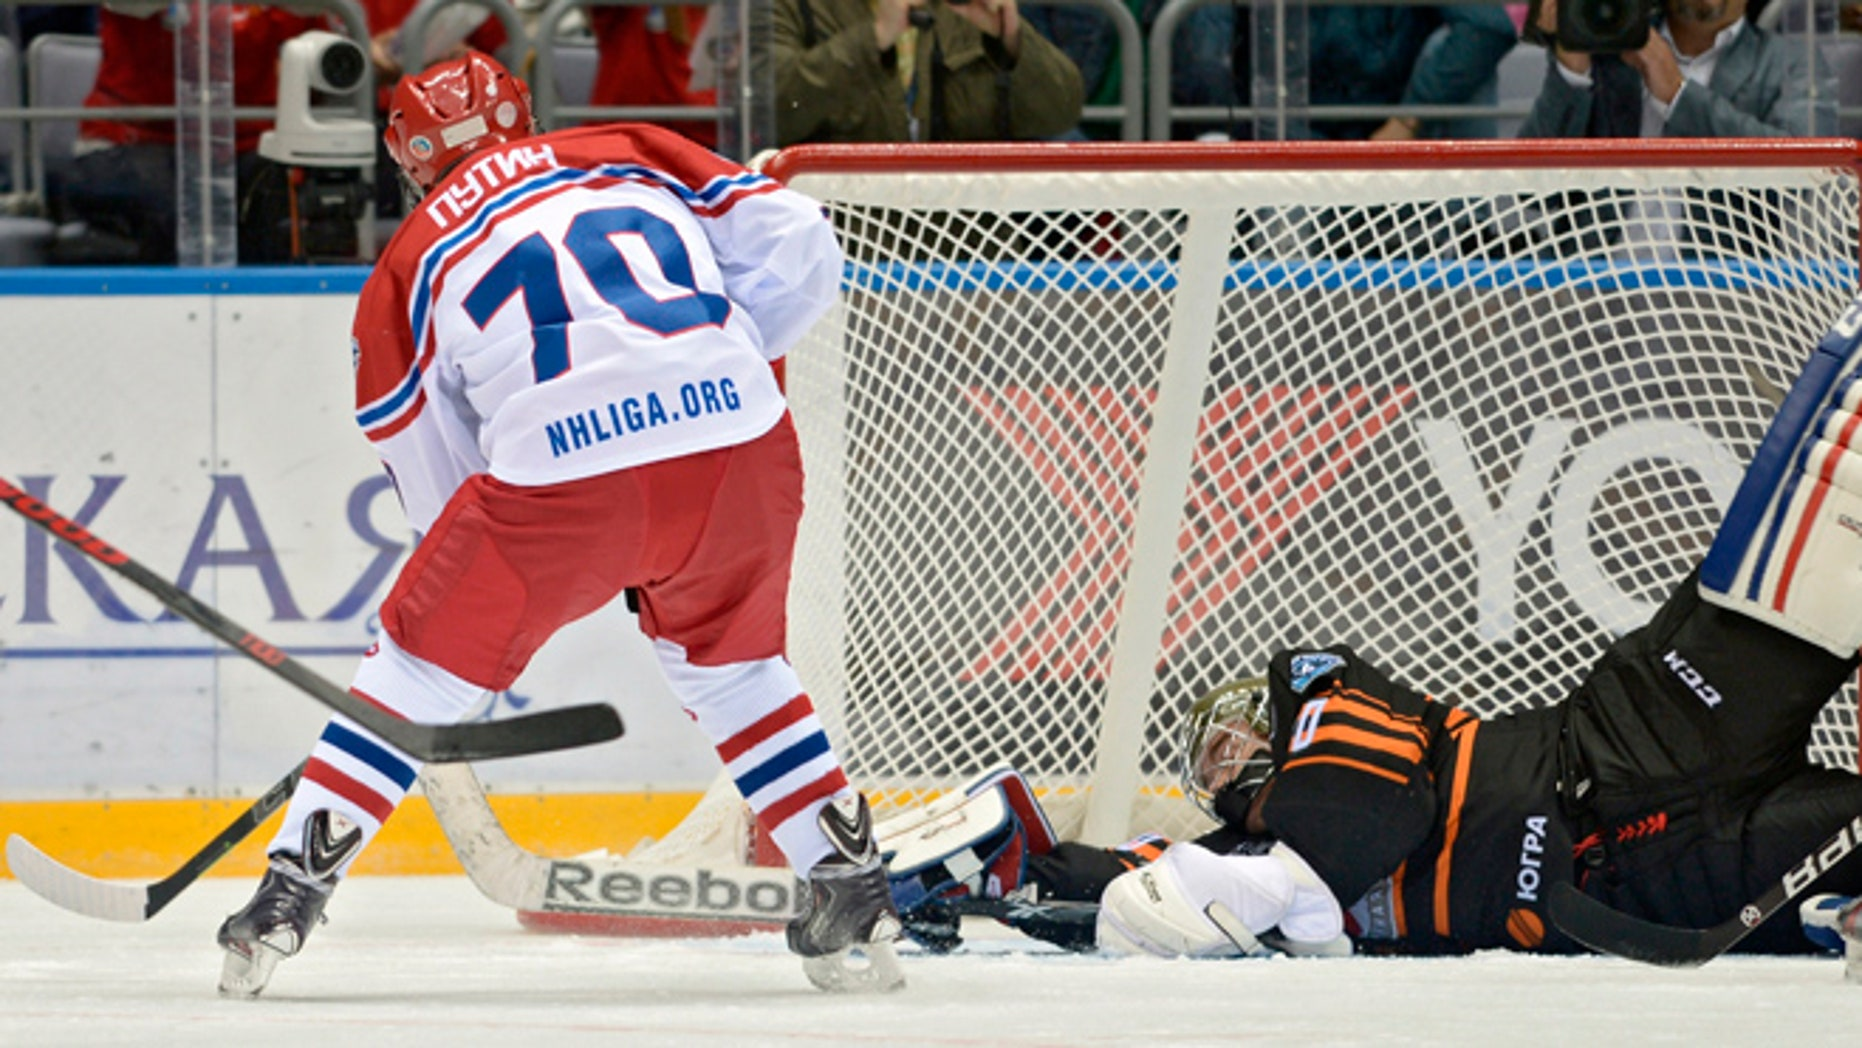 Russia S Putin Scores 8 Goals In Game With Nhl Veterans Fox News